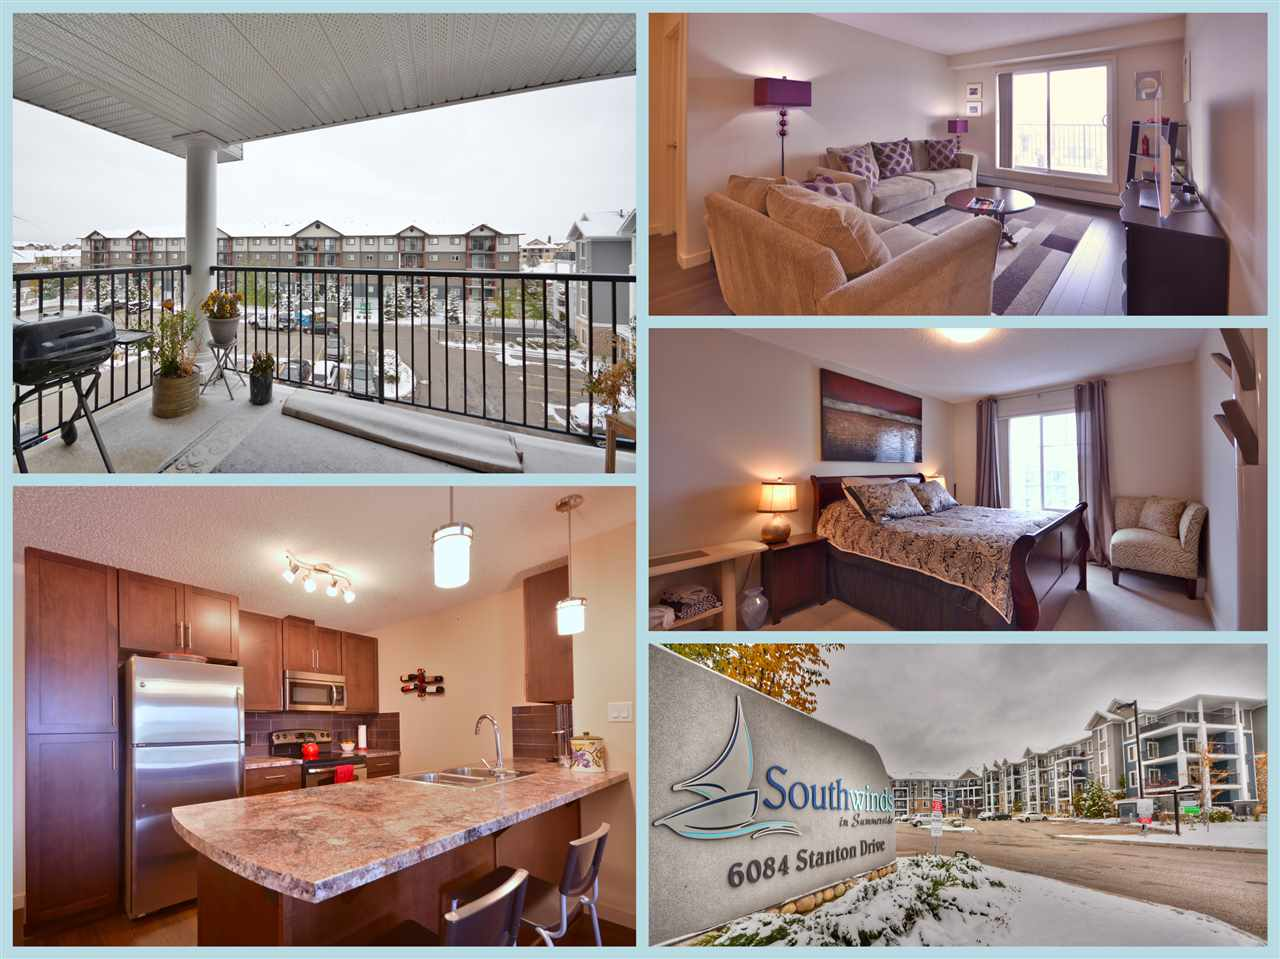 416 6084 STANTON Drive, 2 bed, 2 bath, at $224,500